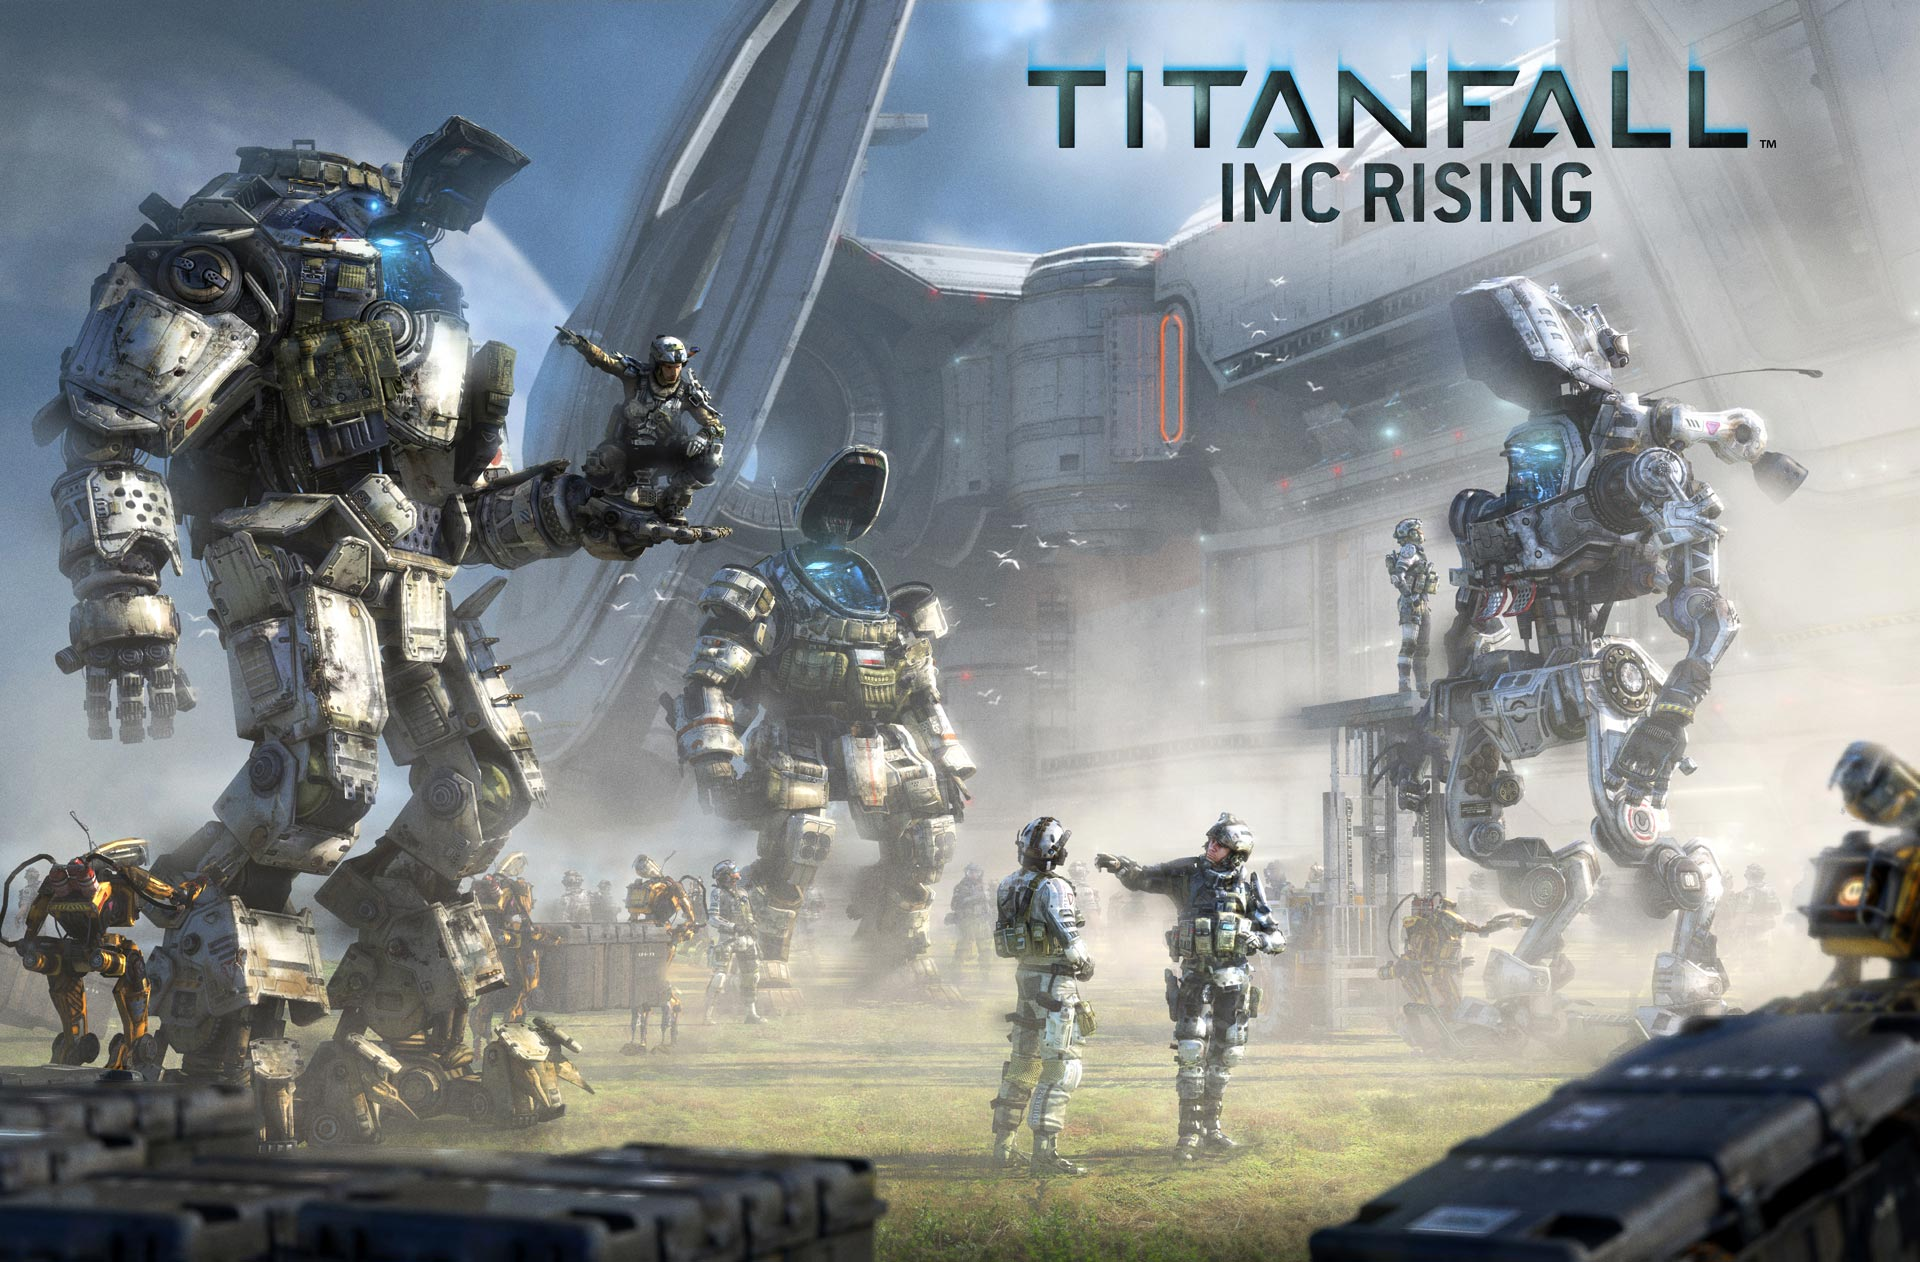 Xbox 360 Titanfall Players Get